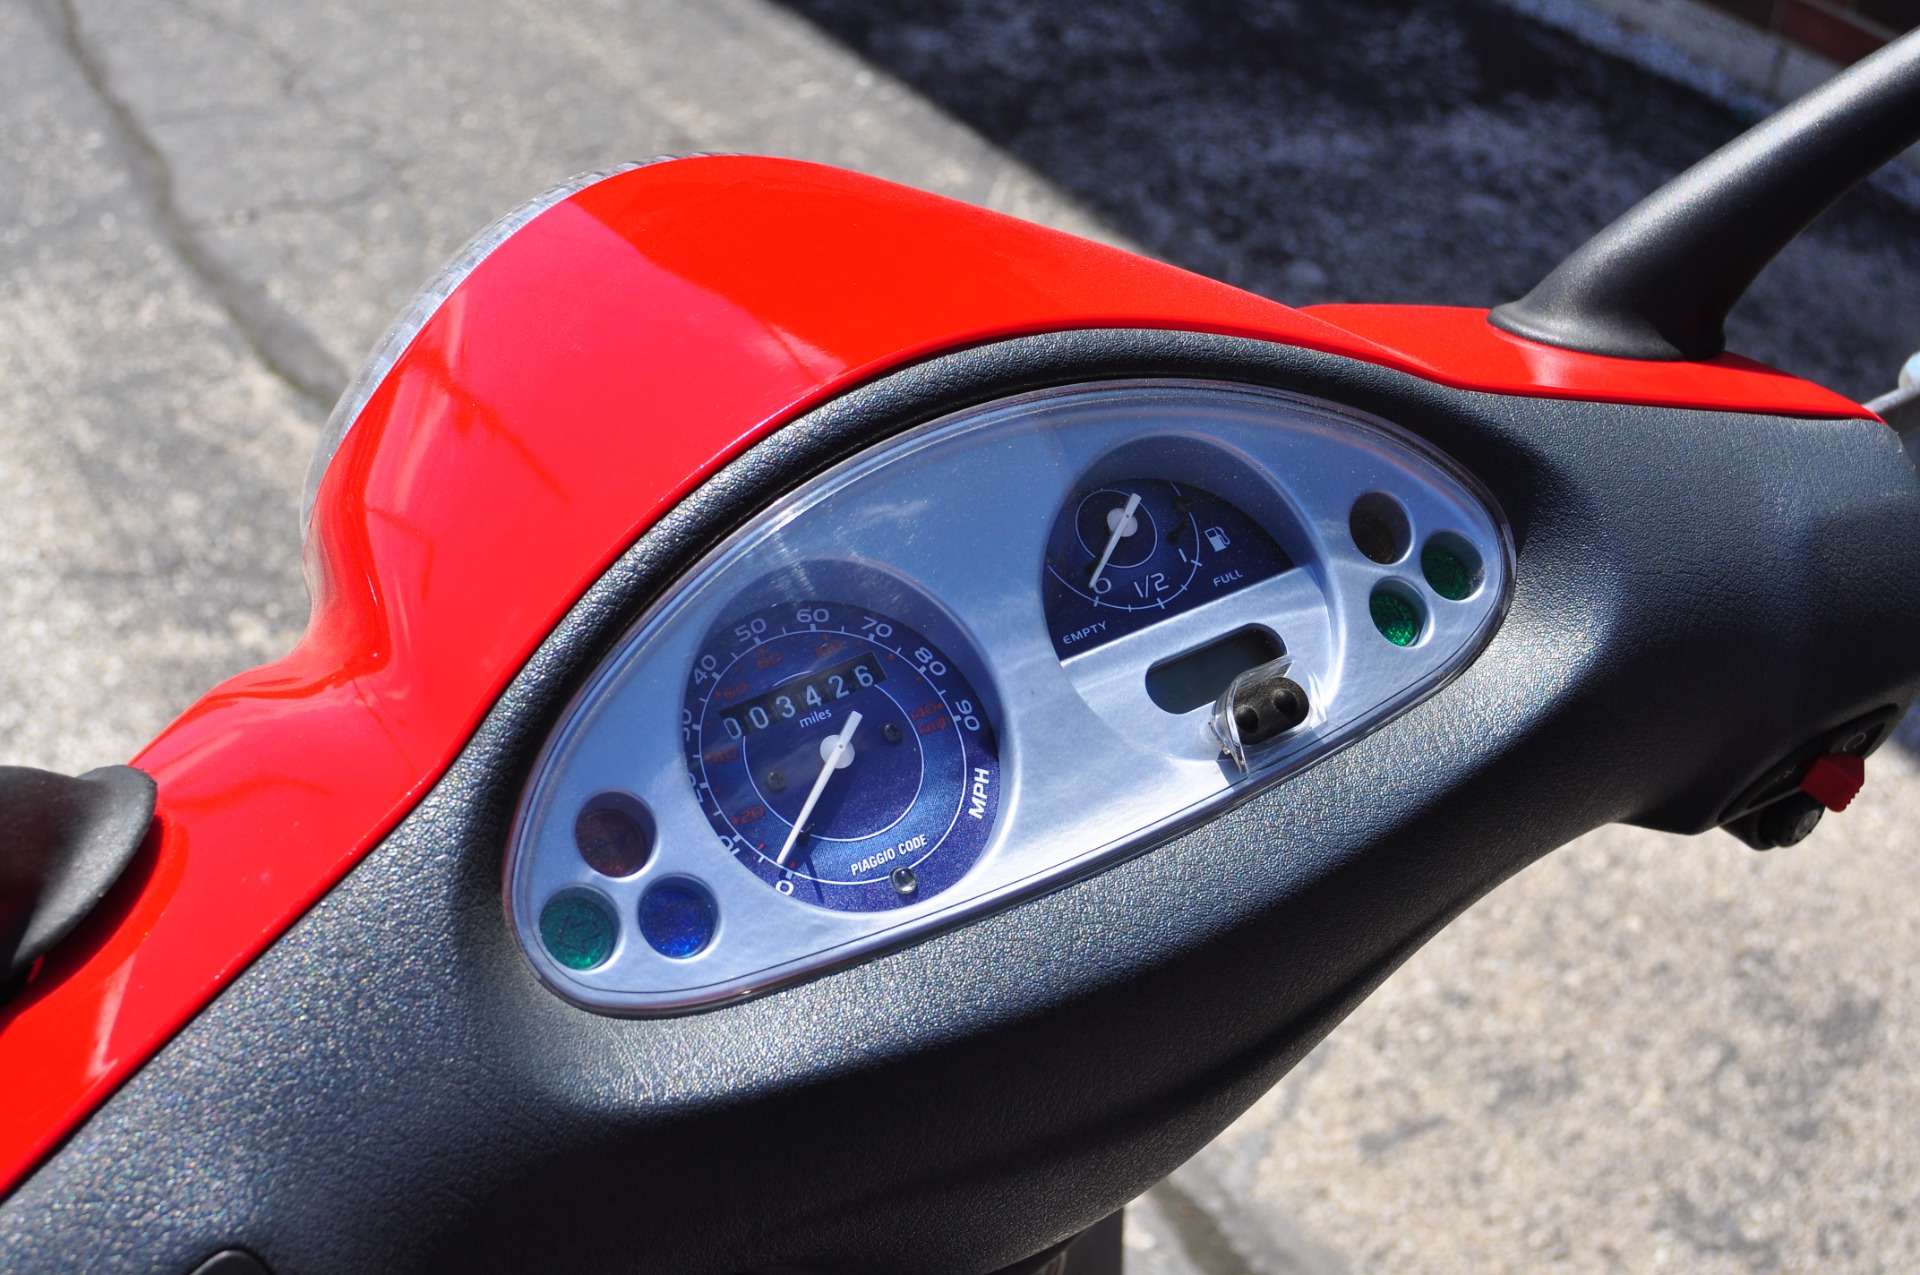 Used-2006-Piaggio-Fly-150